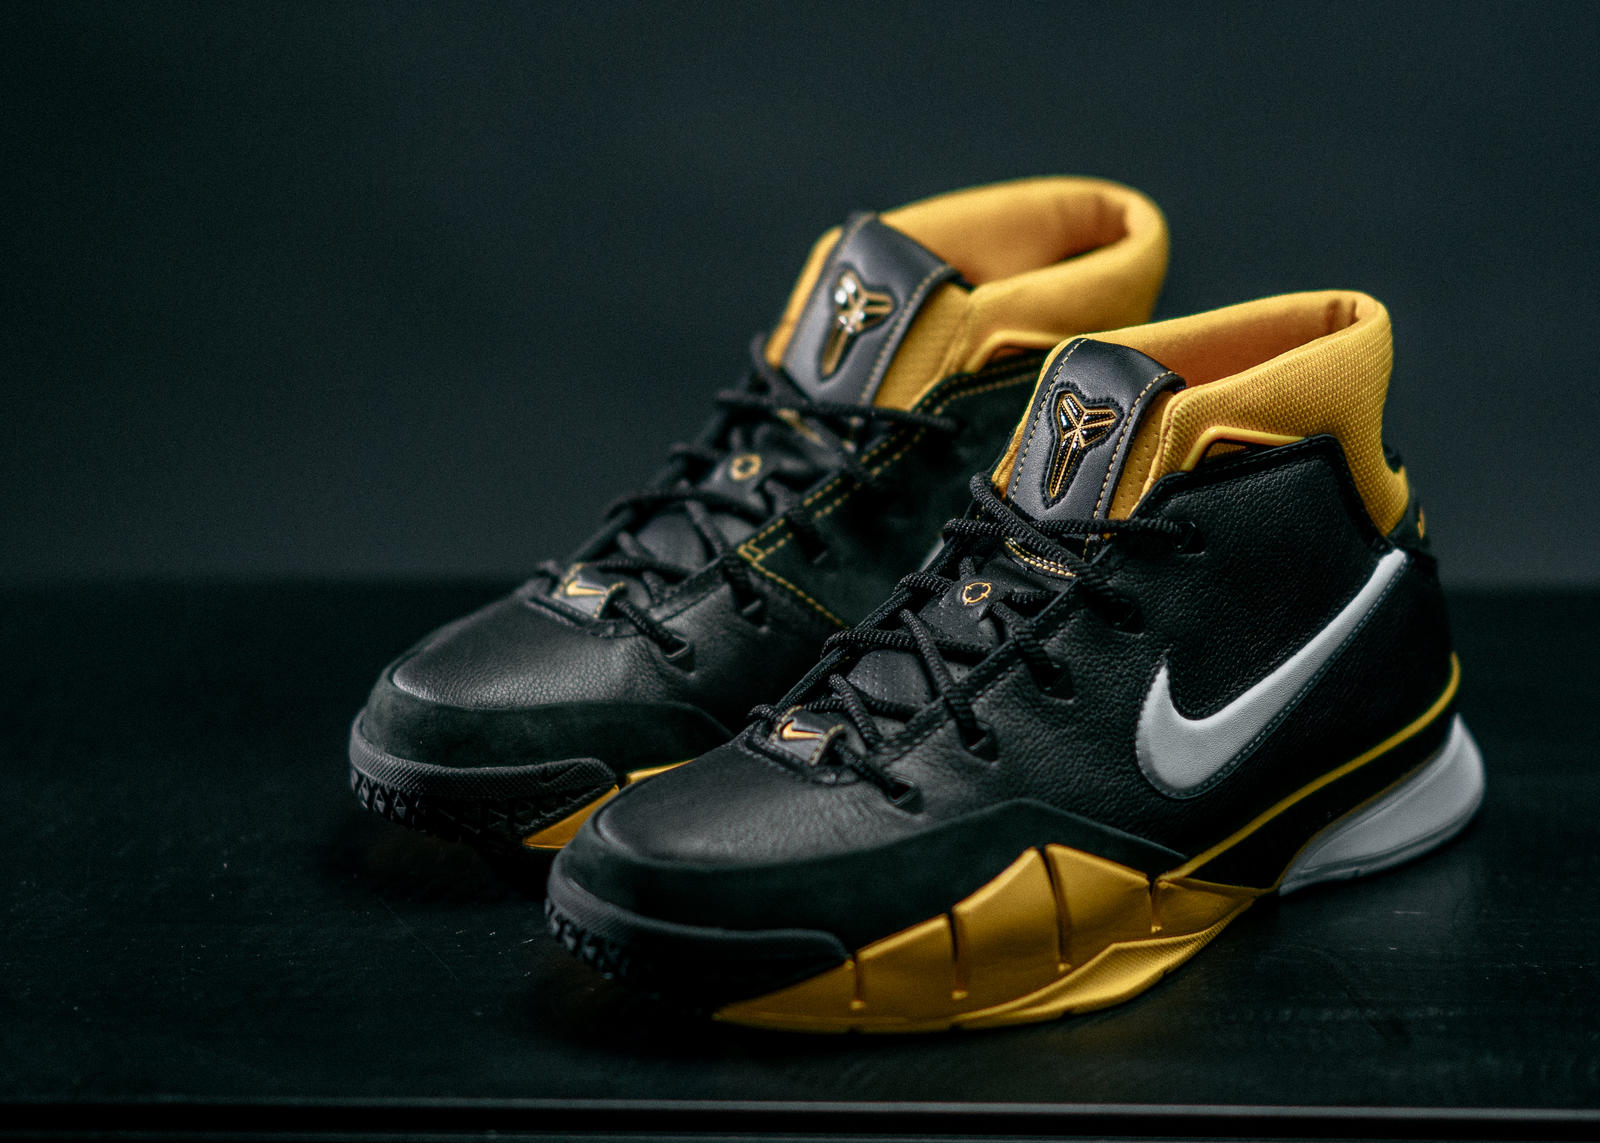 kobe bryant new nike shoes 2018 images of the year 918003